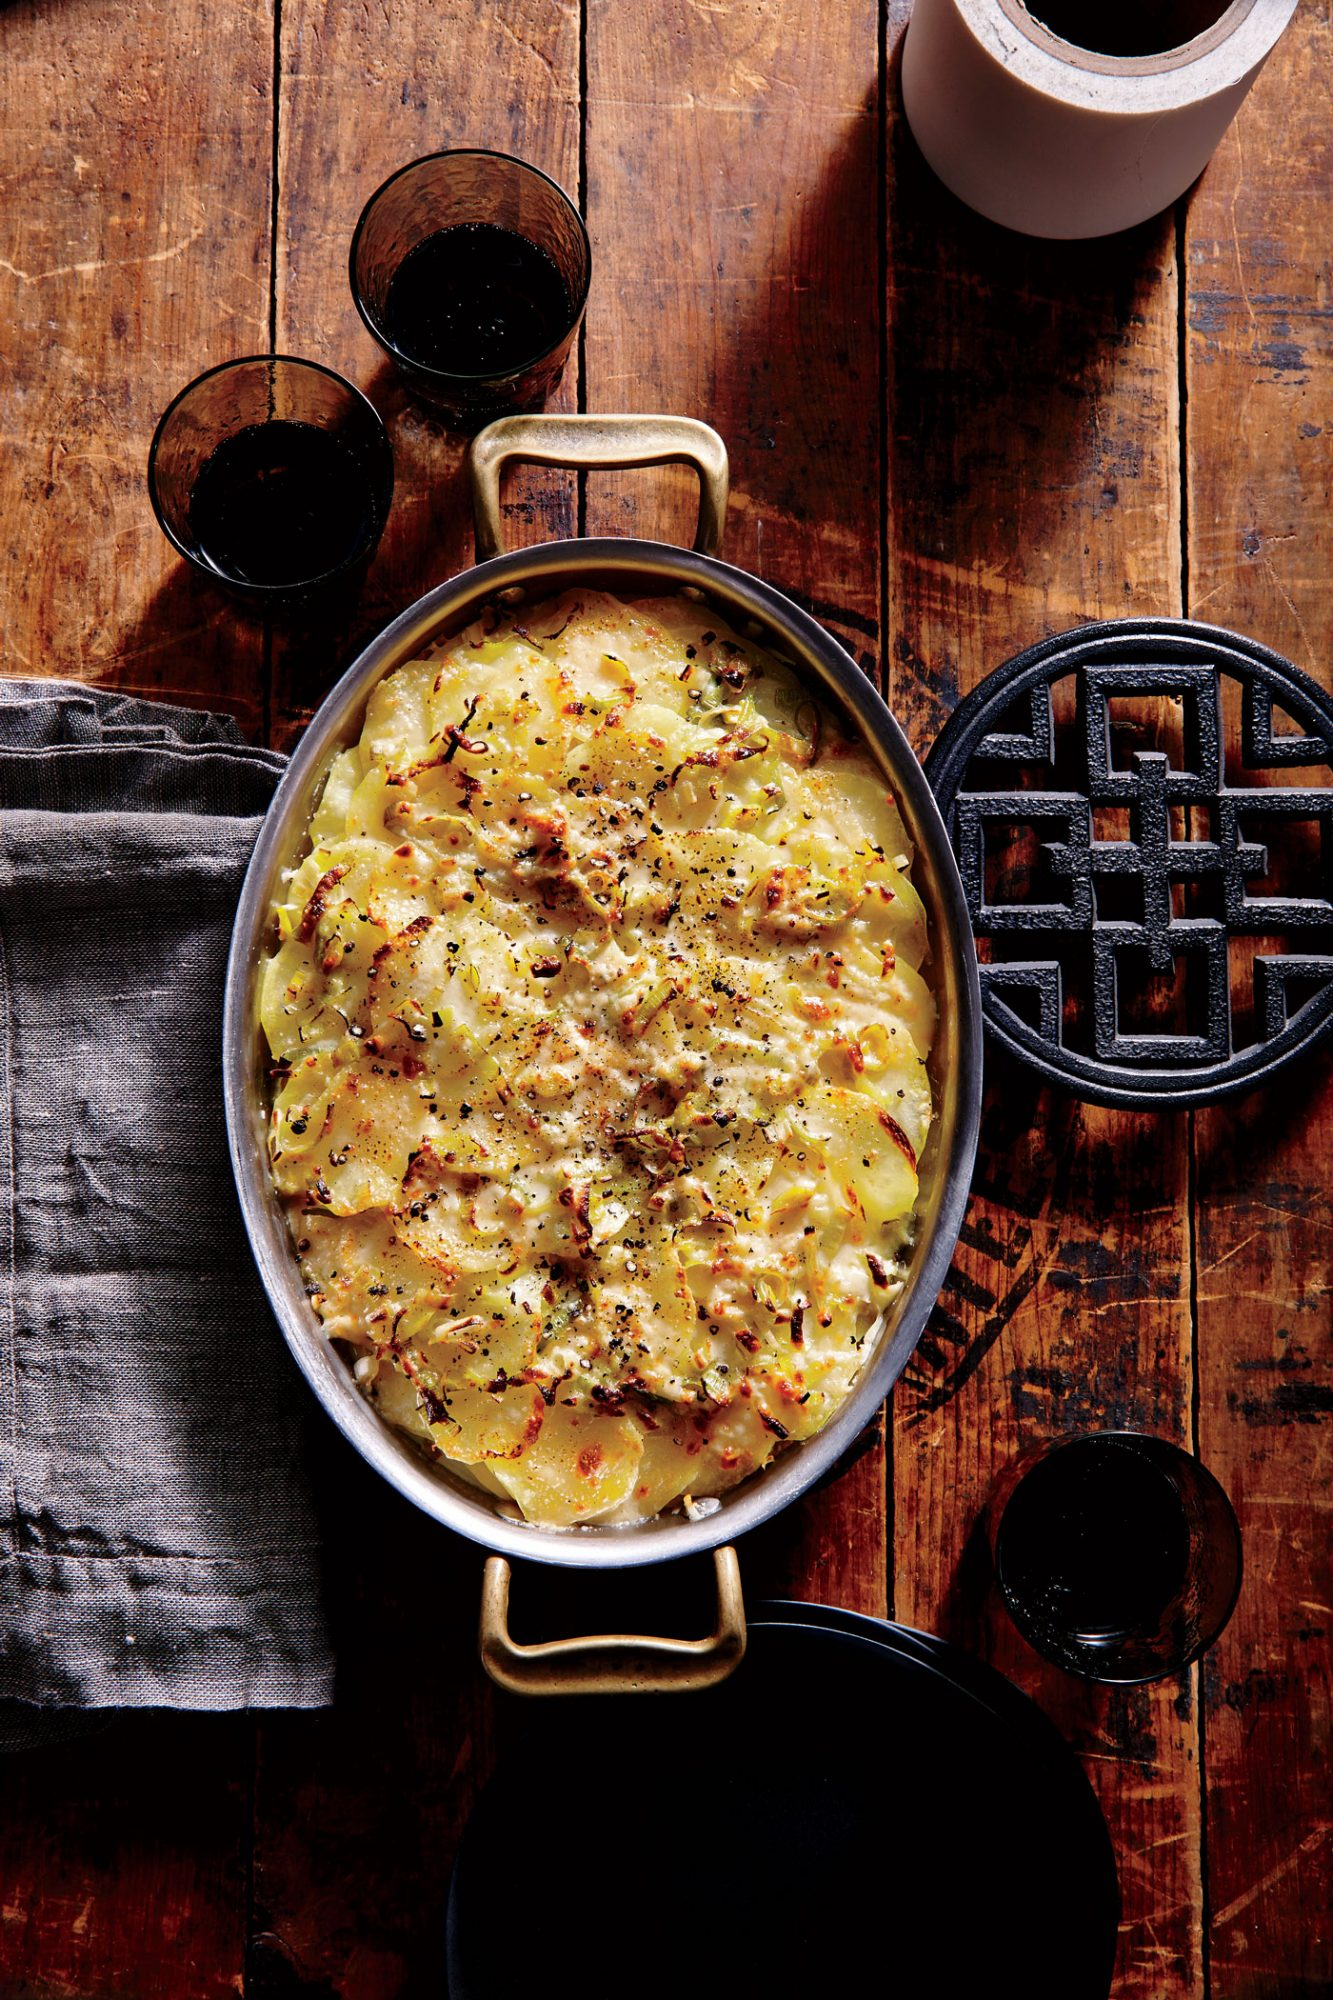 ck-Potato and Leek Gratin Image